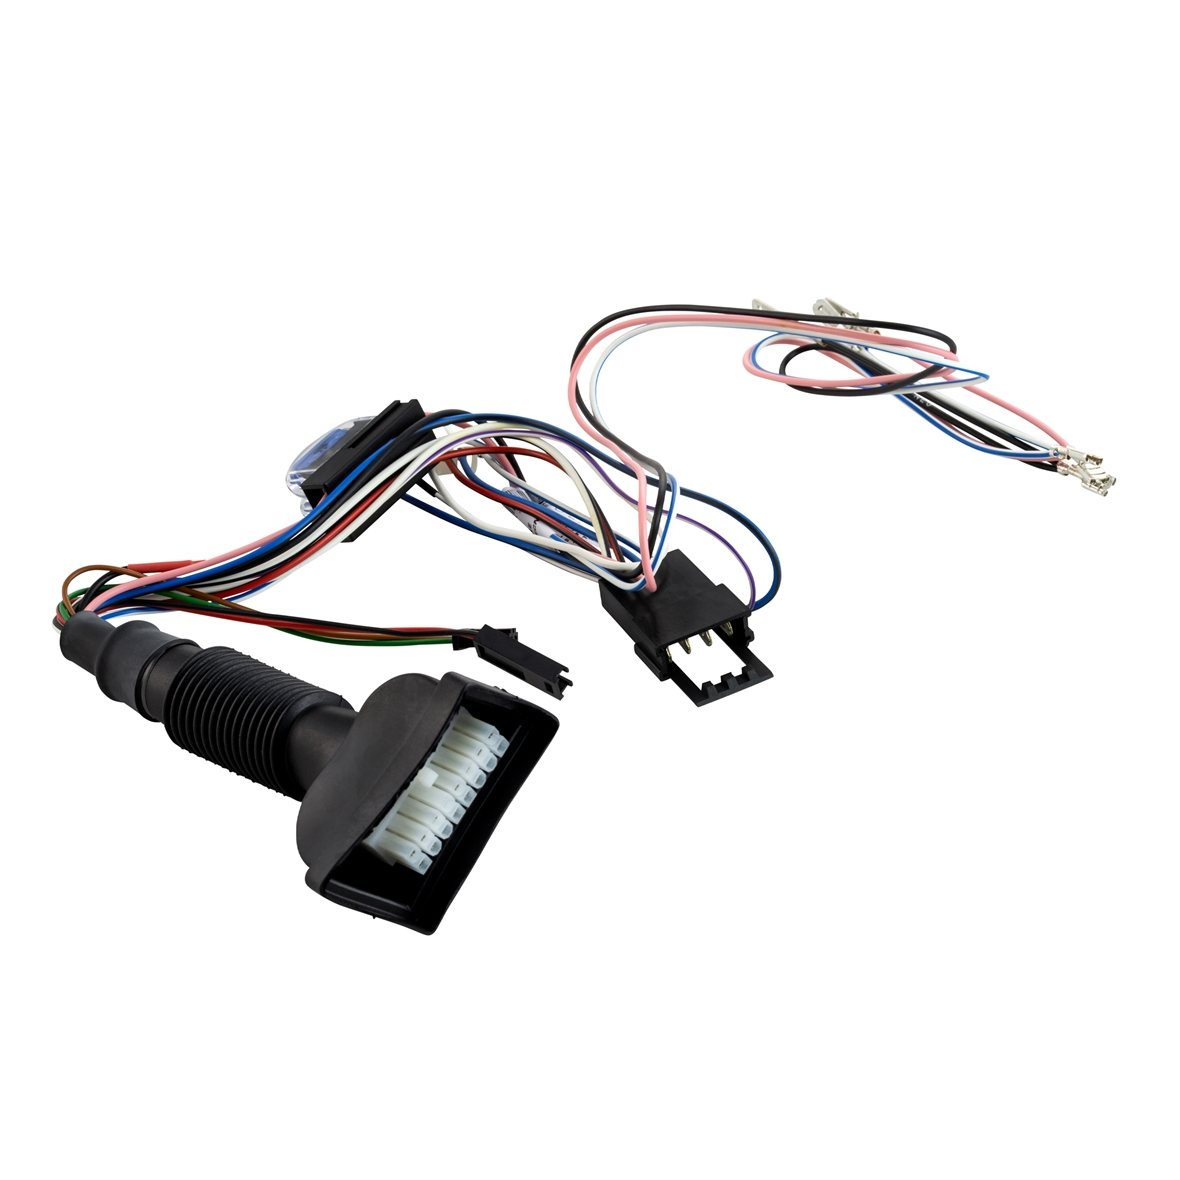 Product Image for 'Adaptor Cable PIAGGIO alarm system, e-LuxTitle'